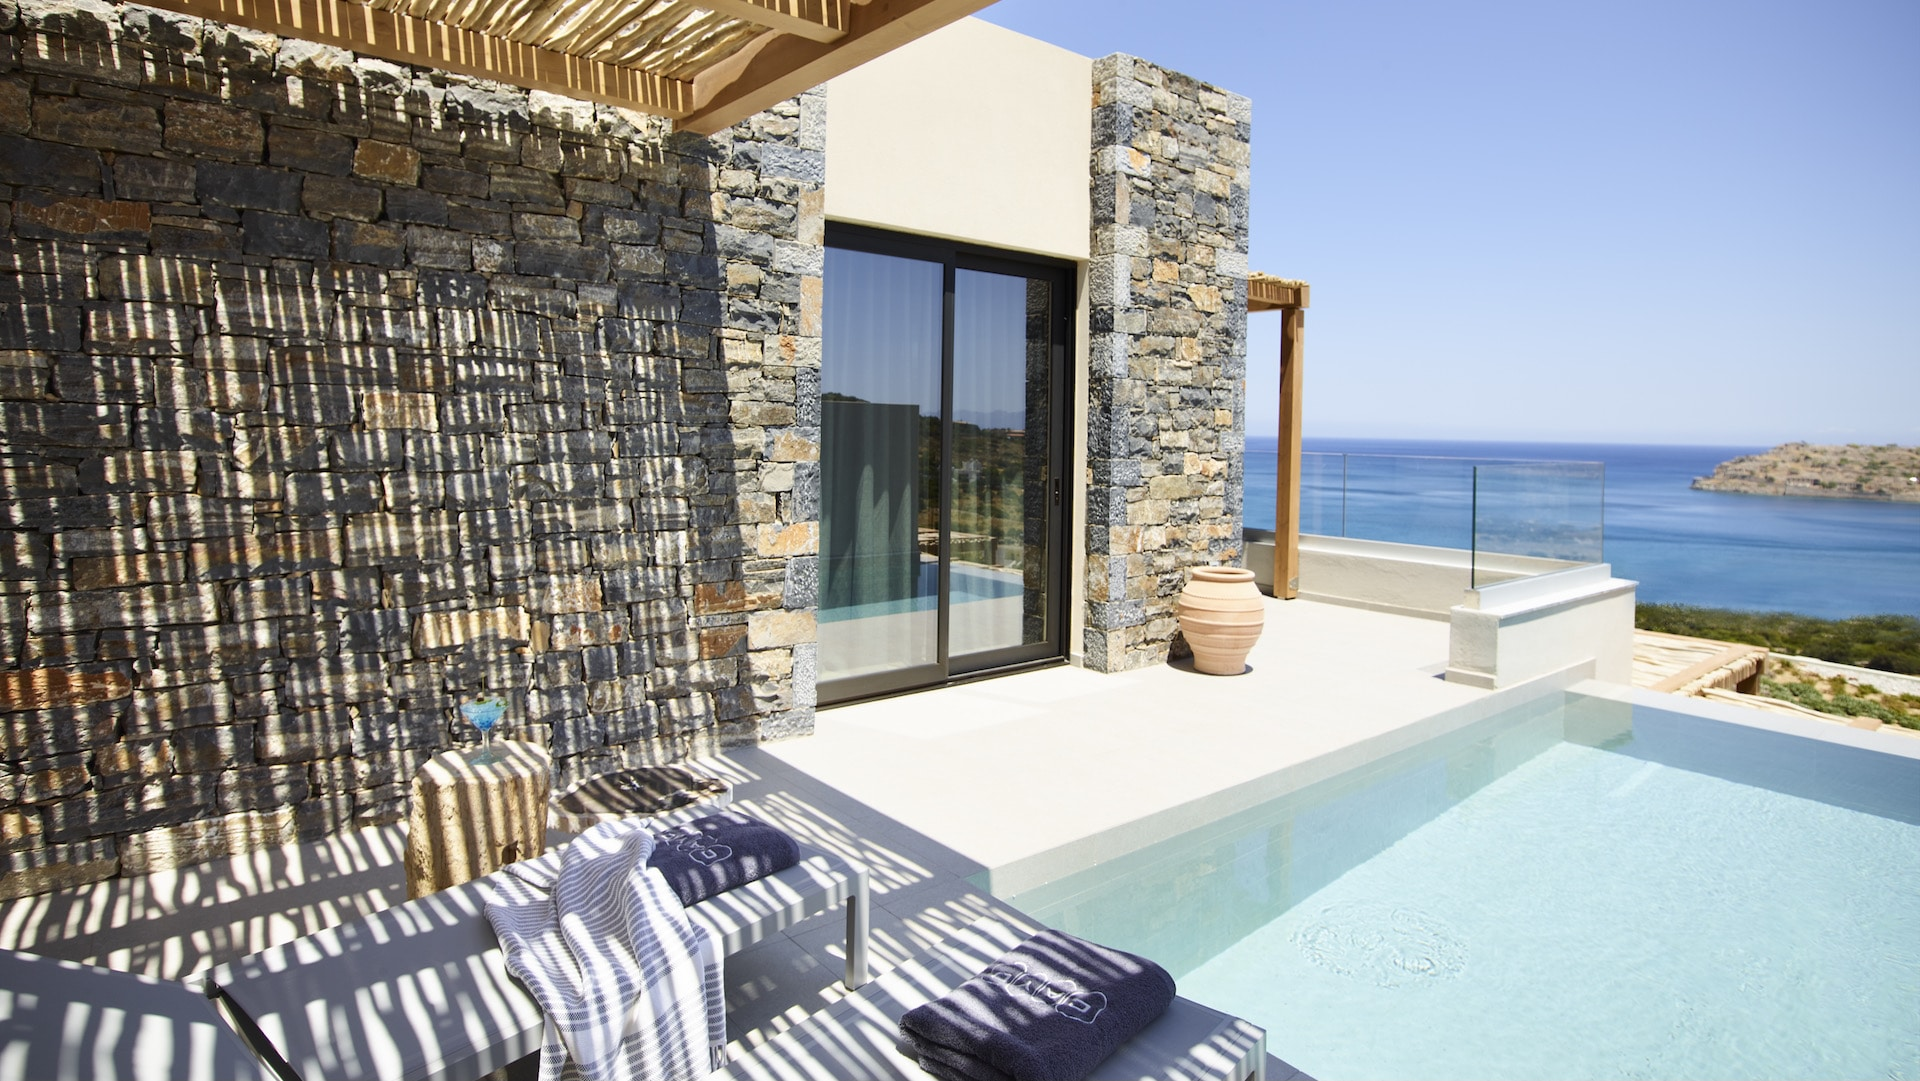 Executive Room Exterior with Pool